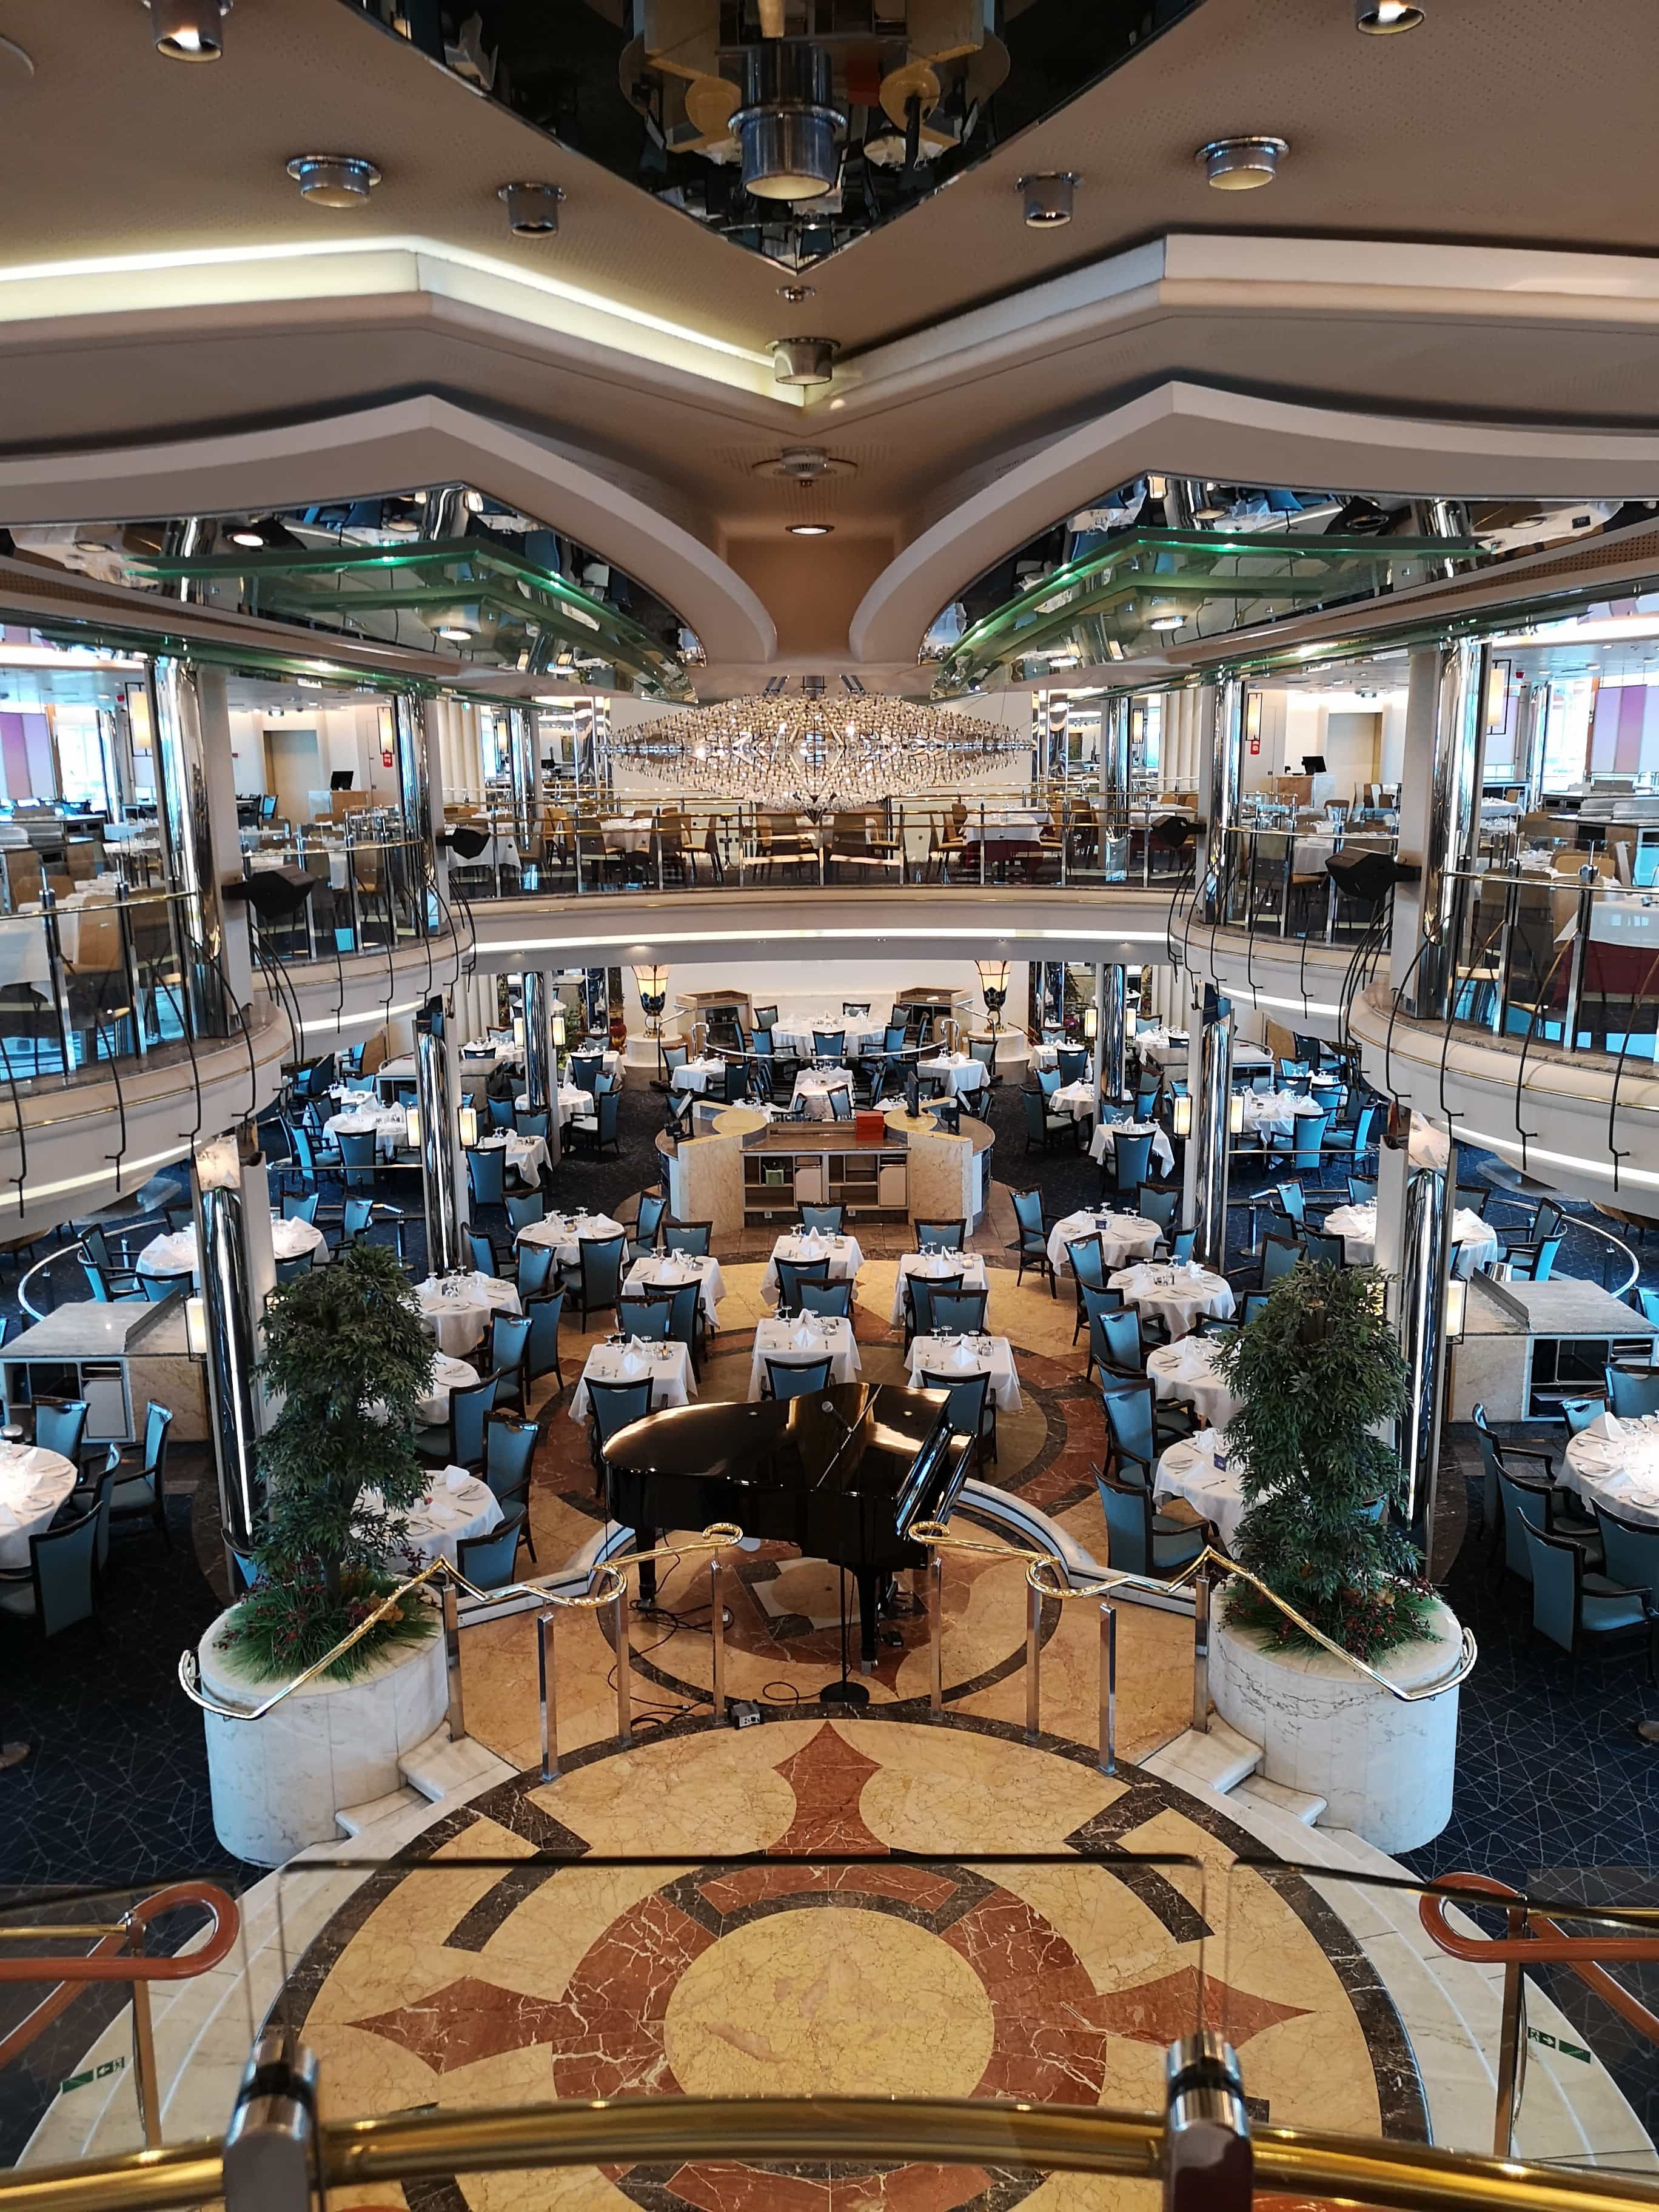 Marella Discovery Main Dining Room 47 degrees